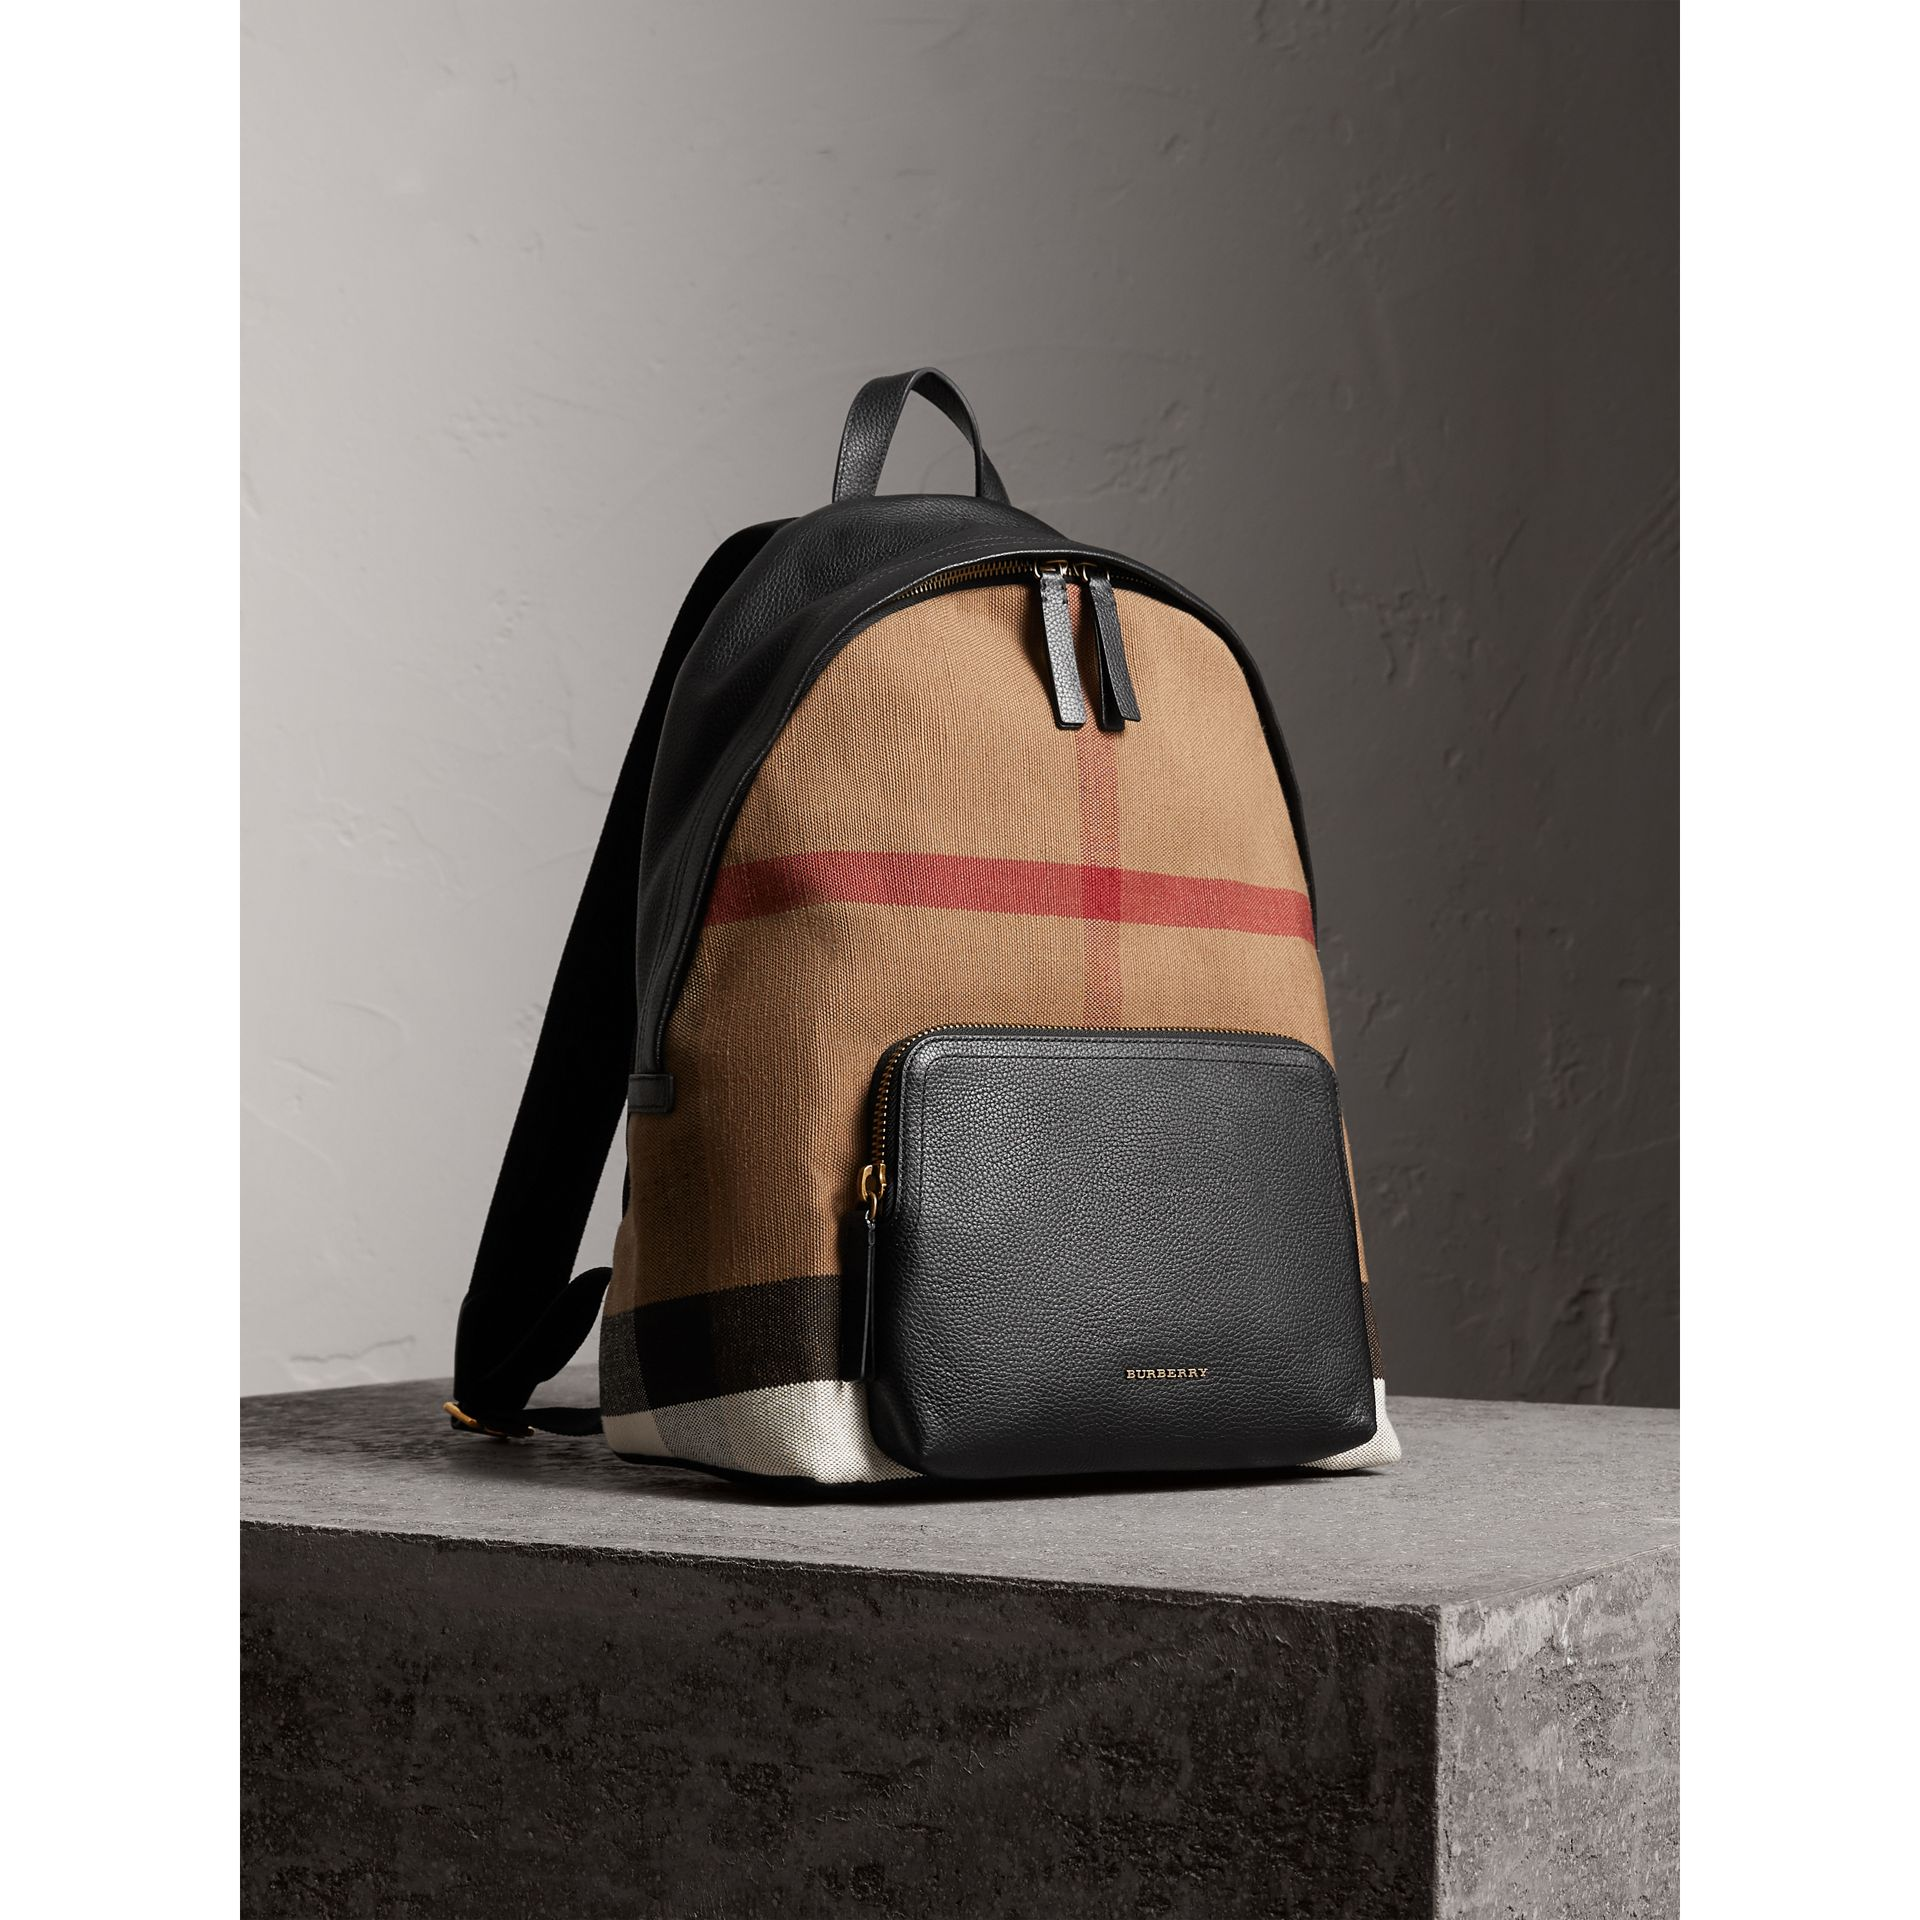 Sac à dos à motif Canvas check avec cuir (Noir) - Homme | Burberry - photo de la galerie 7